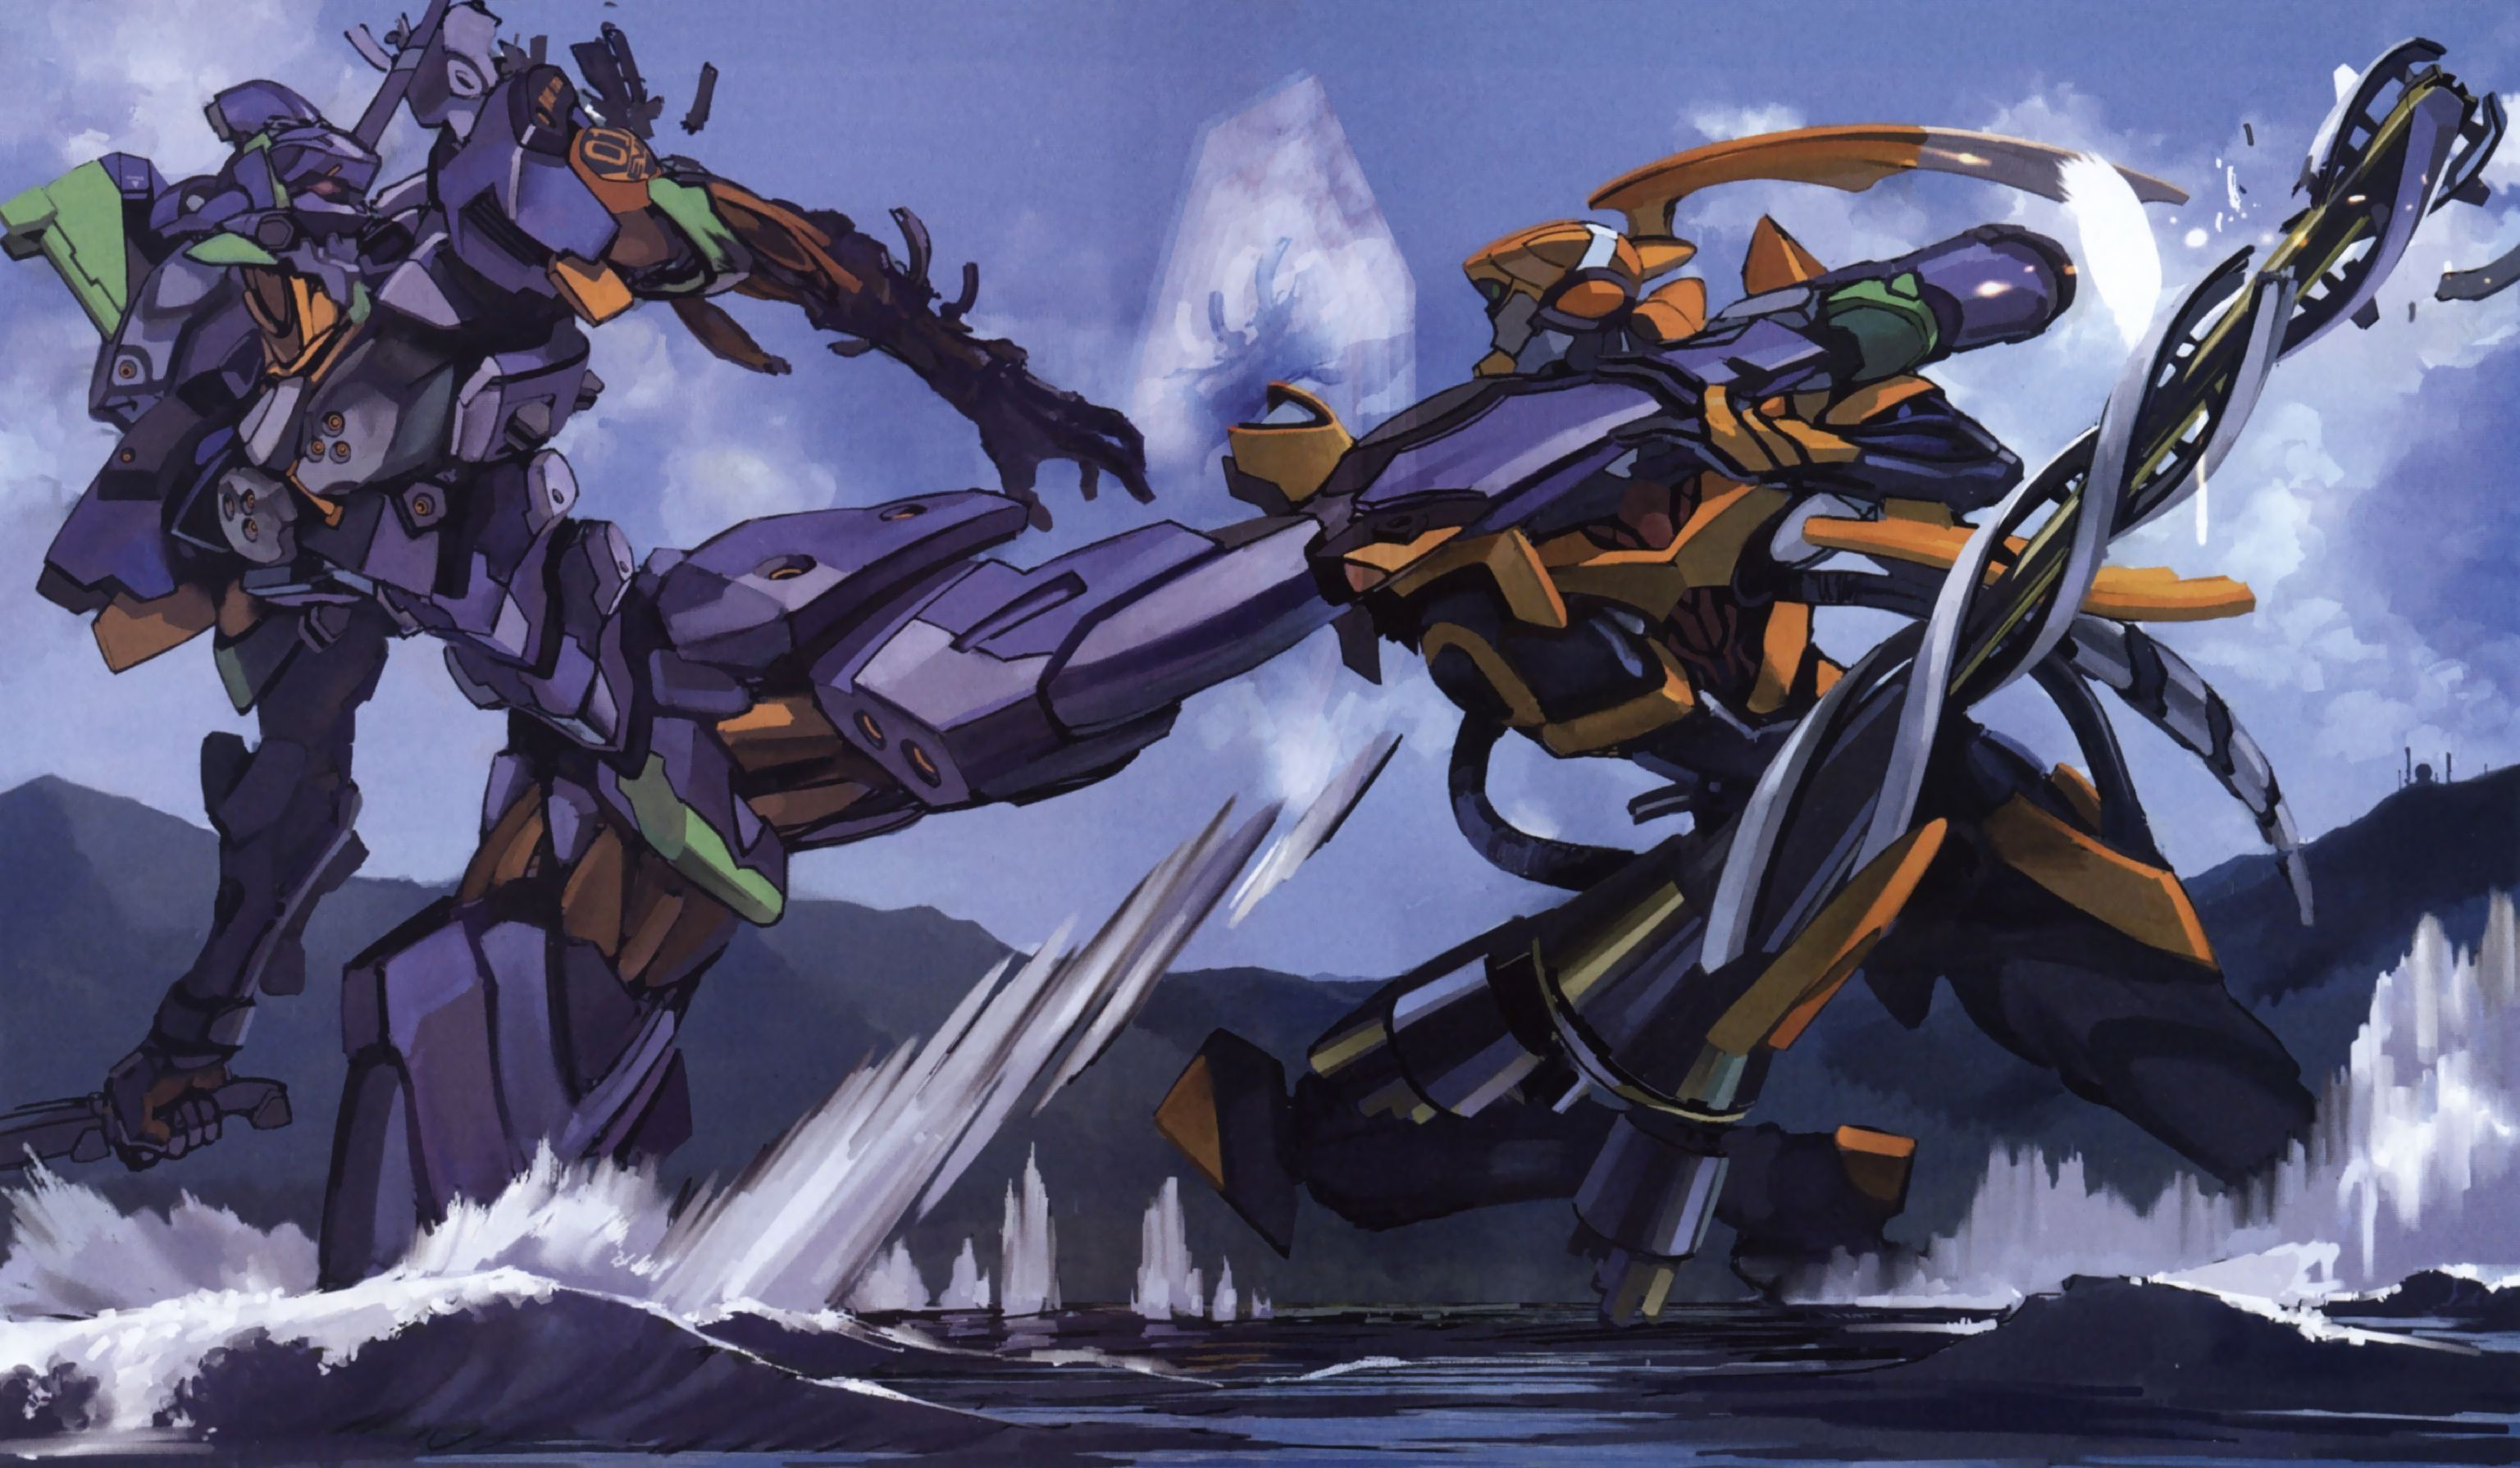 Neon Genesis Evangelion Unit 01 Berserk HD Wallpaper